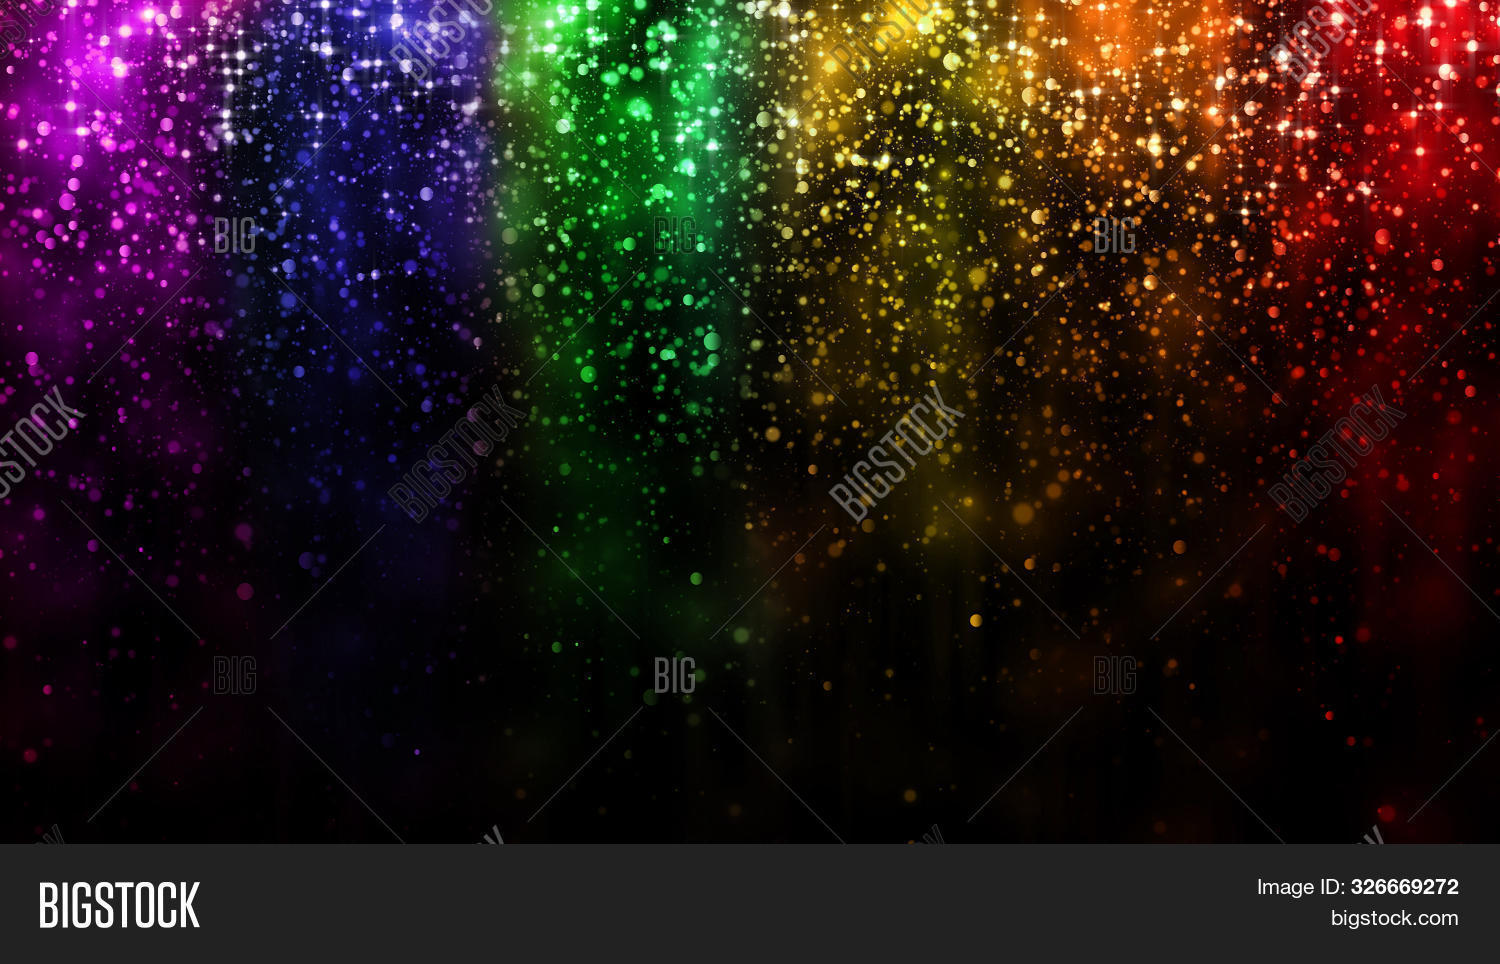 Lgbt Color Festive Background With Shiny Falling Particles, Rainbow Colorful Abstract Graphic For Br